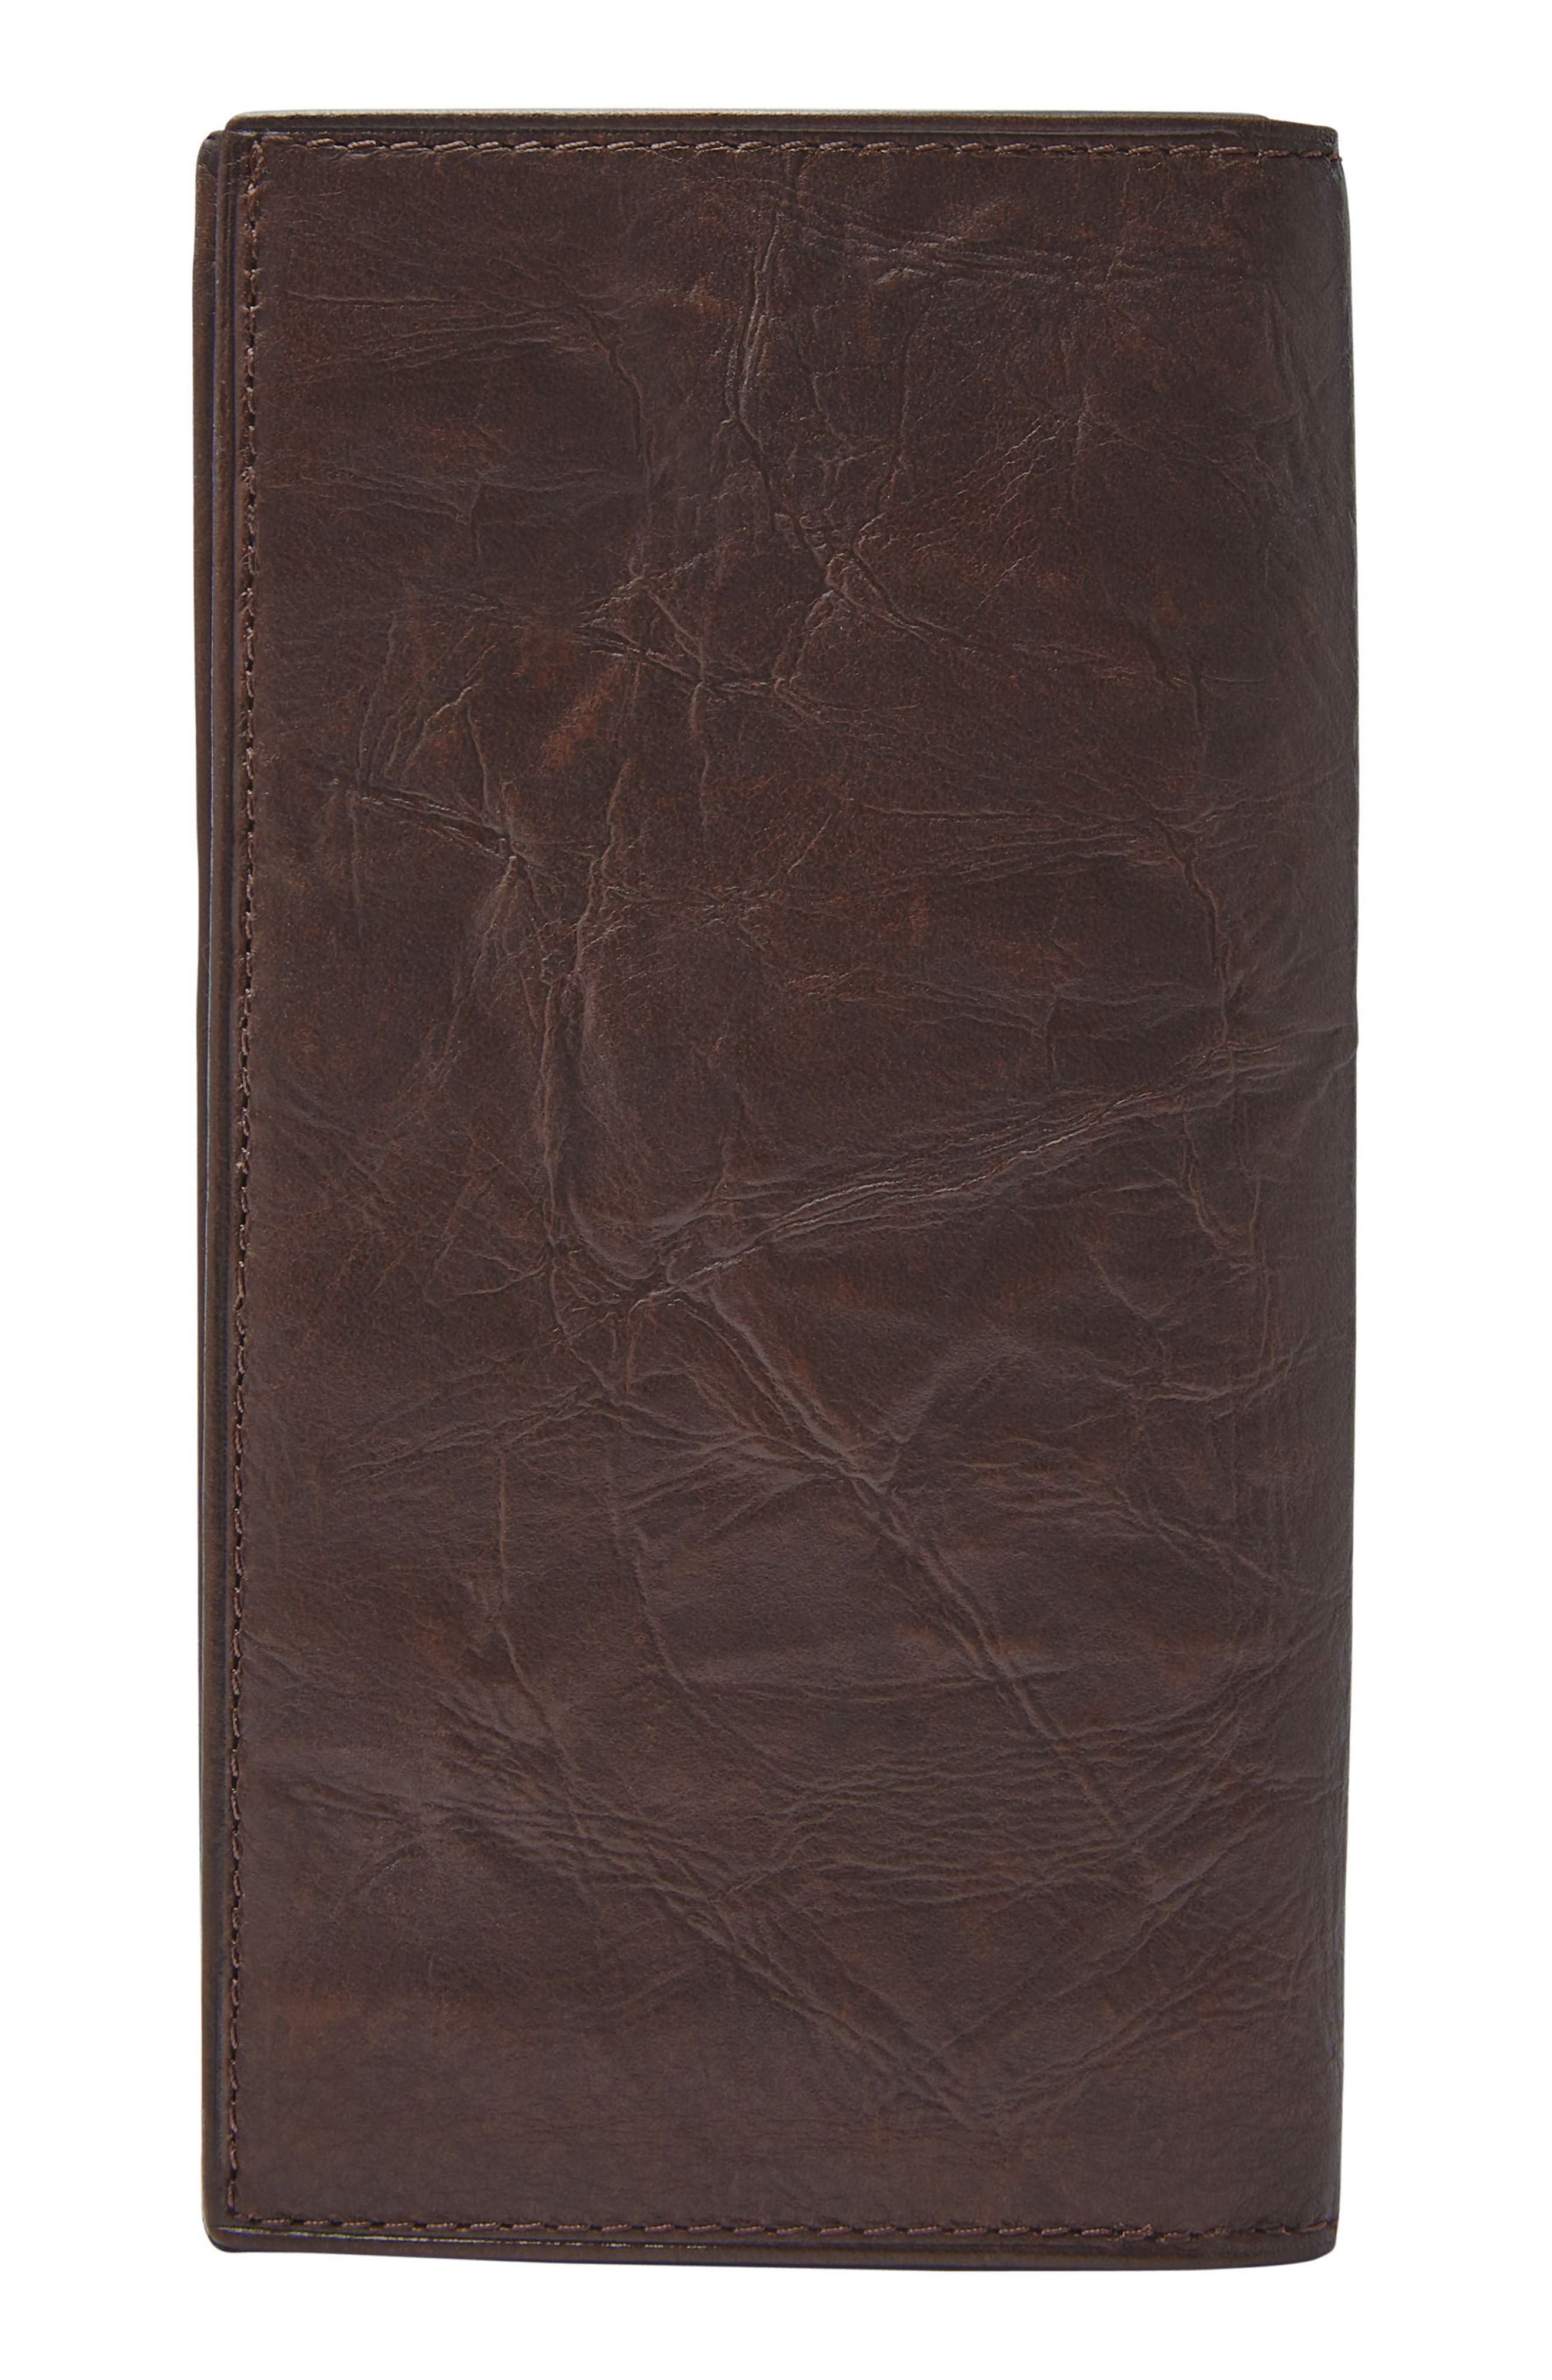 FOSSIL, Neel Leather Executive Wallet, Alternate thumbnail 3, color, BROWN